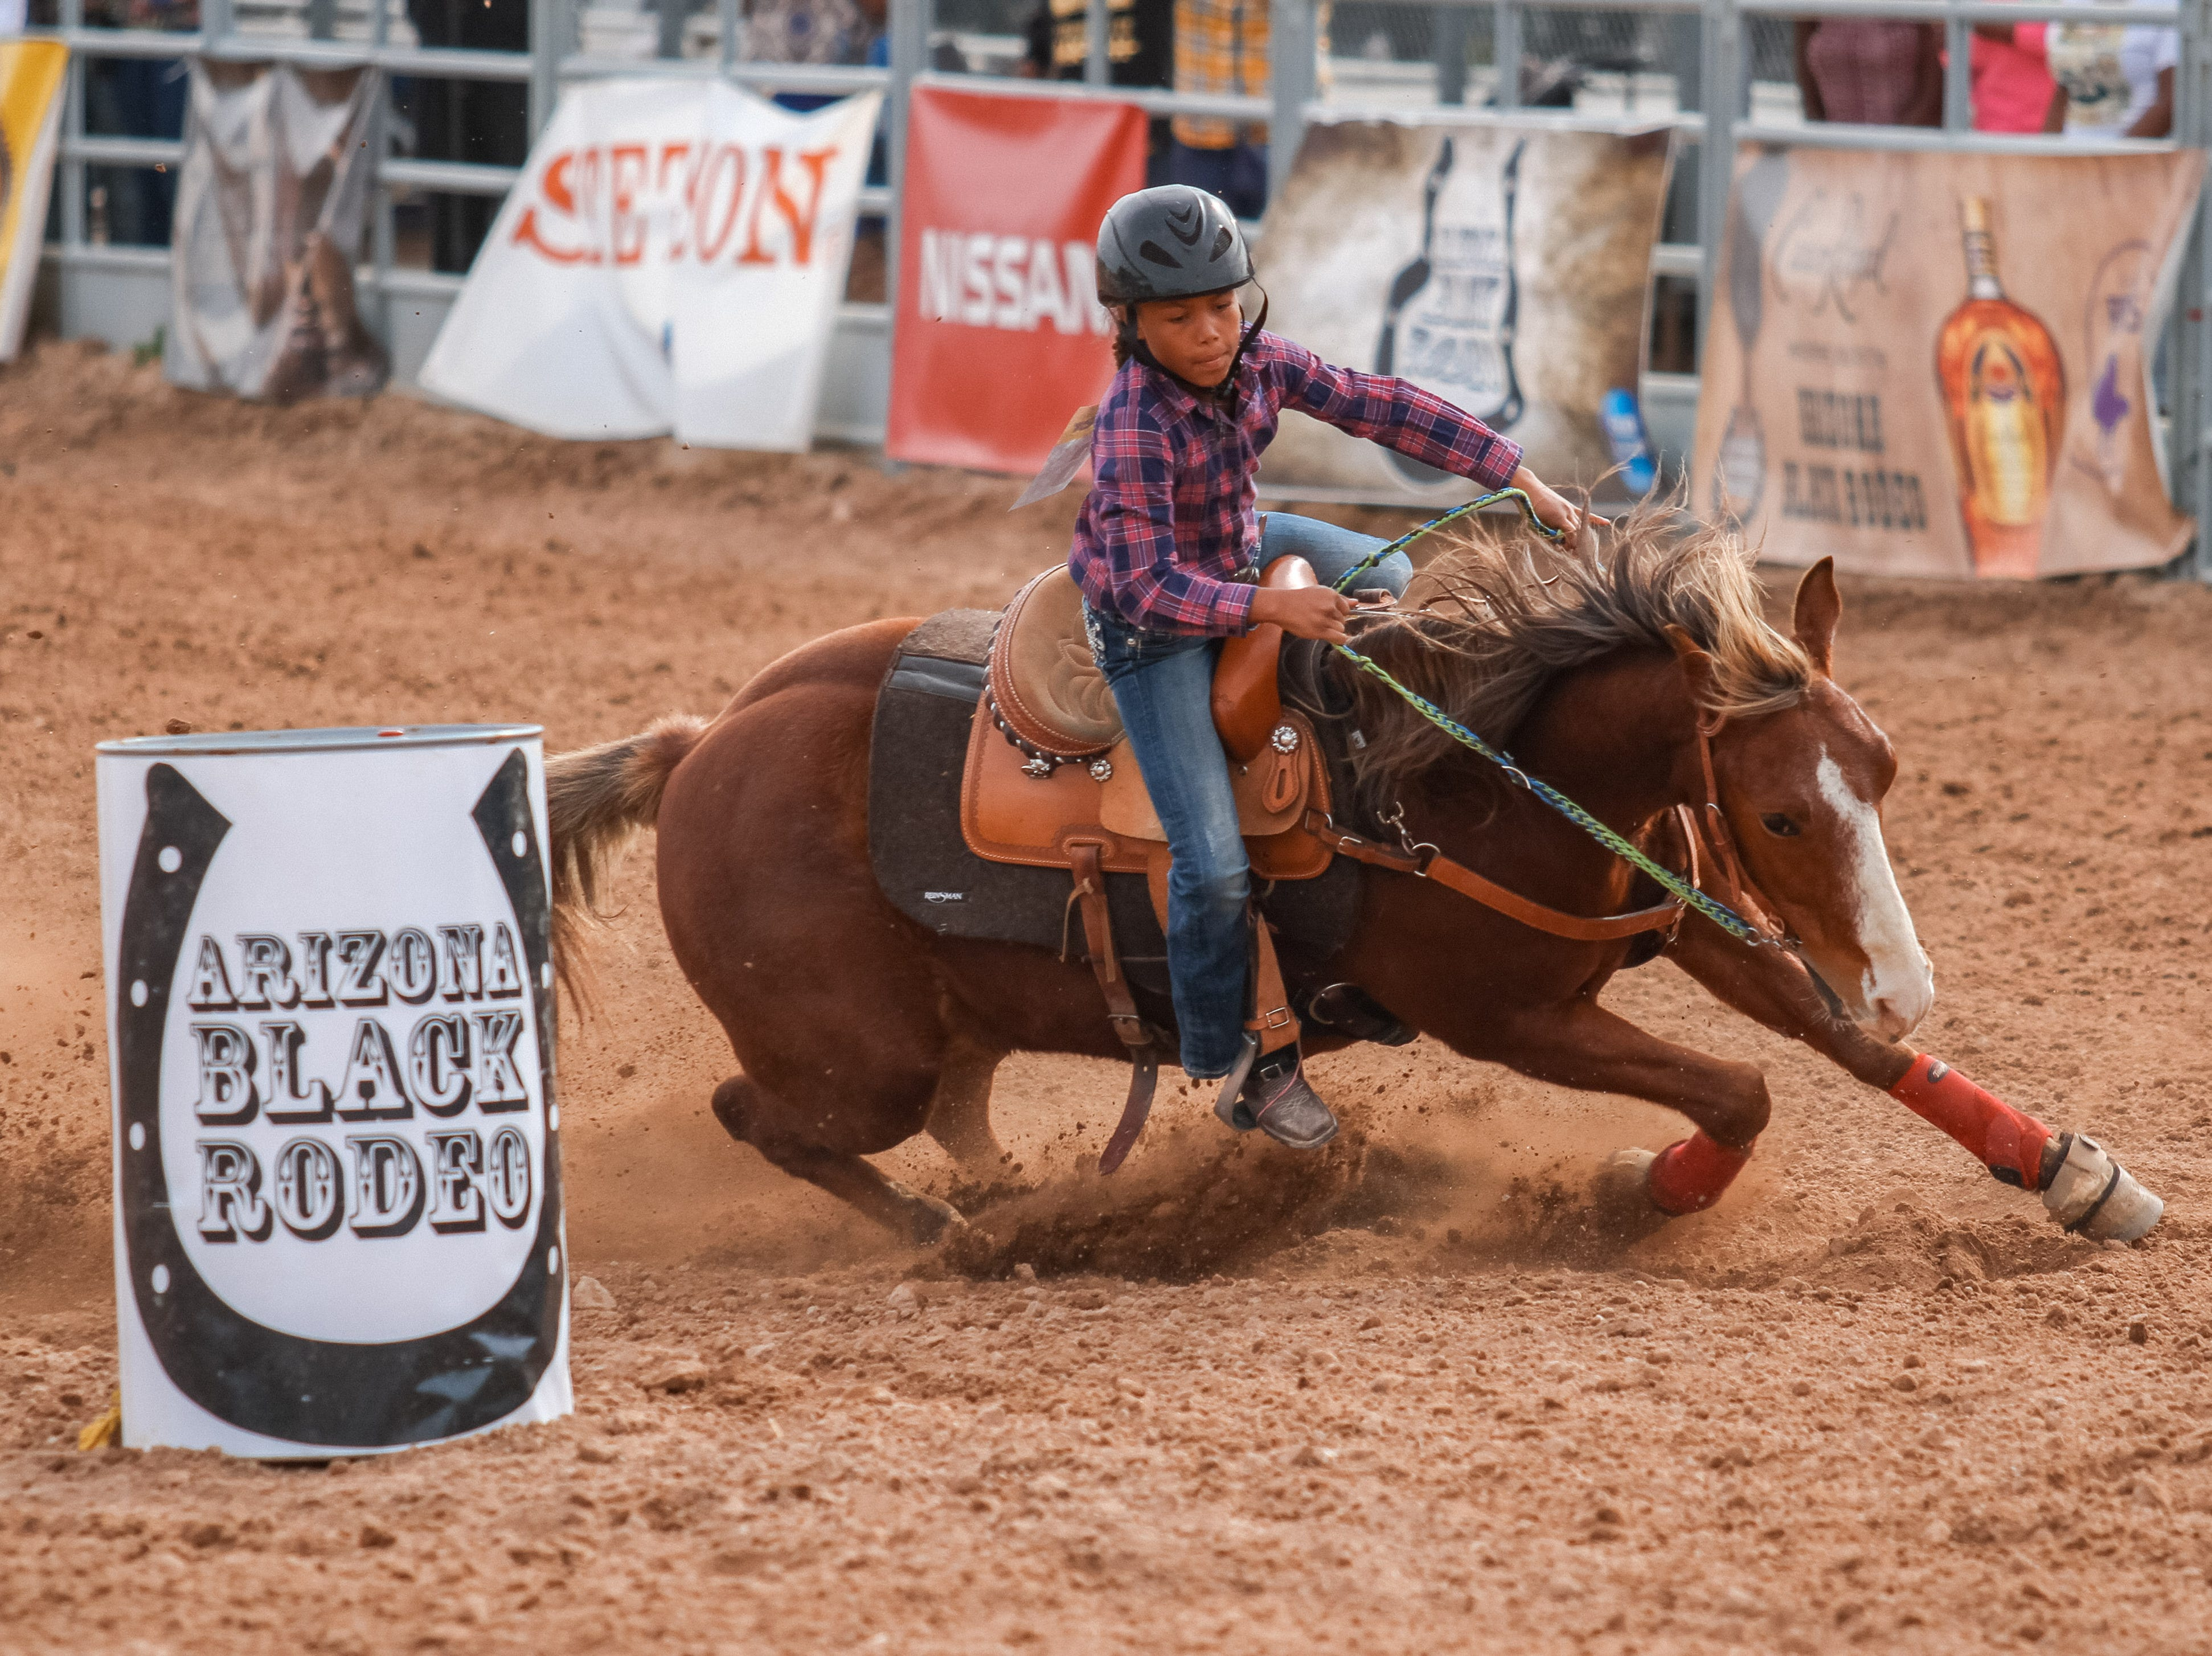 Riders compete in barrel racing at the Arizona Black Rodeo in Chandler, Arizona on Saturday, March 9, 2019.